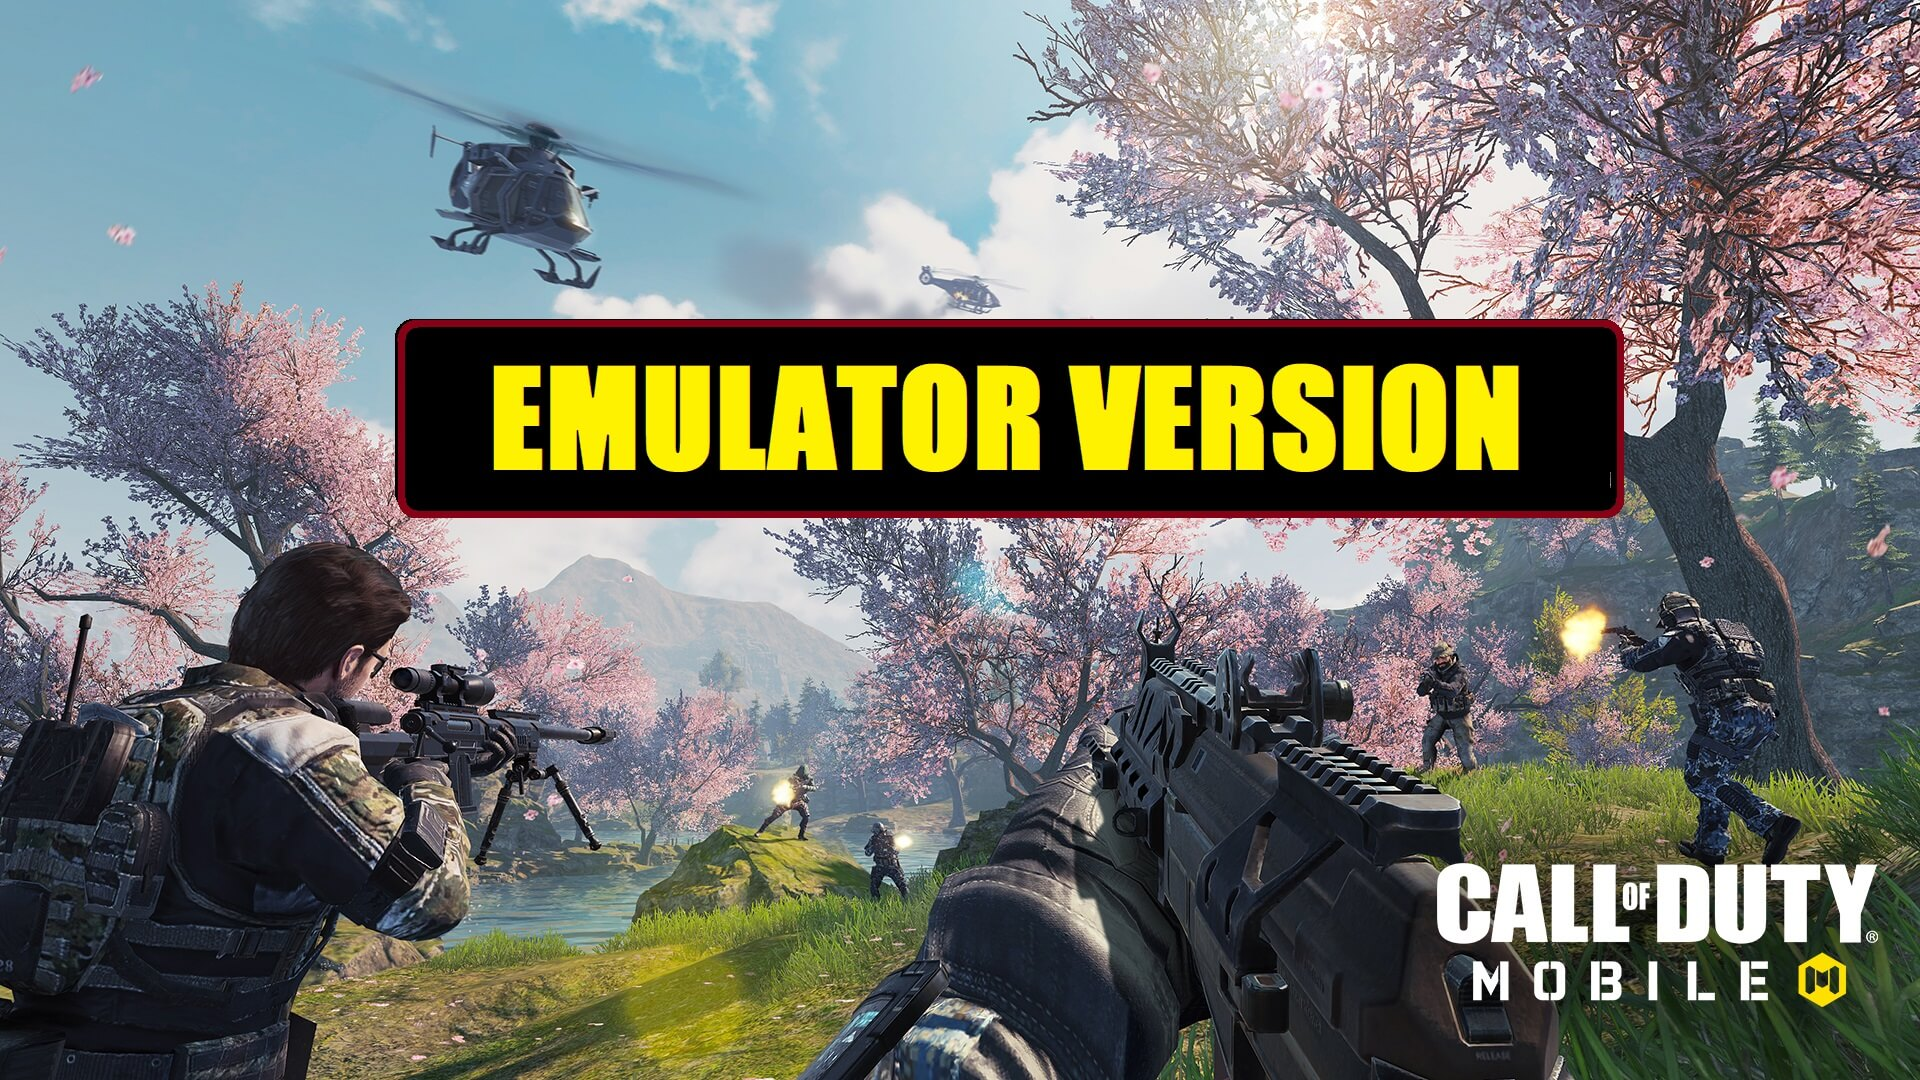 Here Is How To Play Call Of Duty Mobile On Emulator